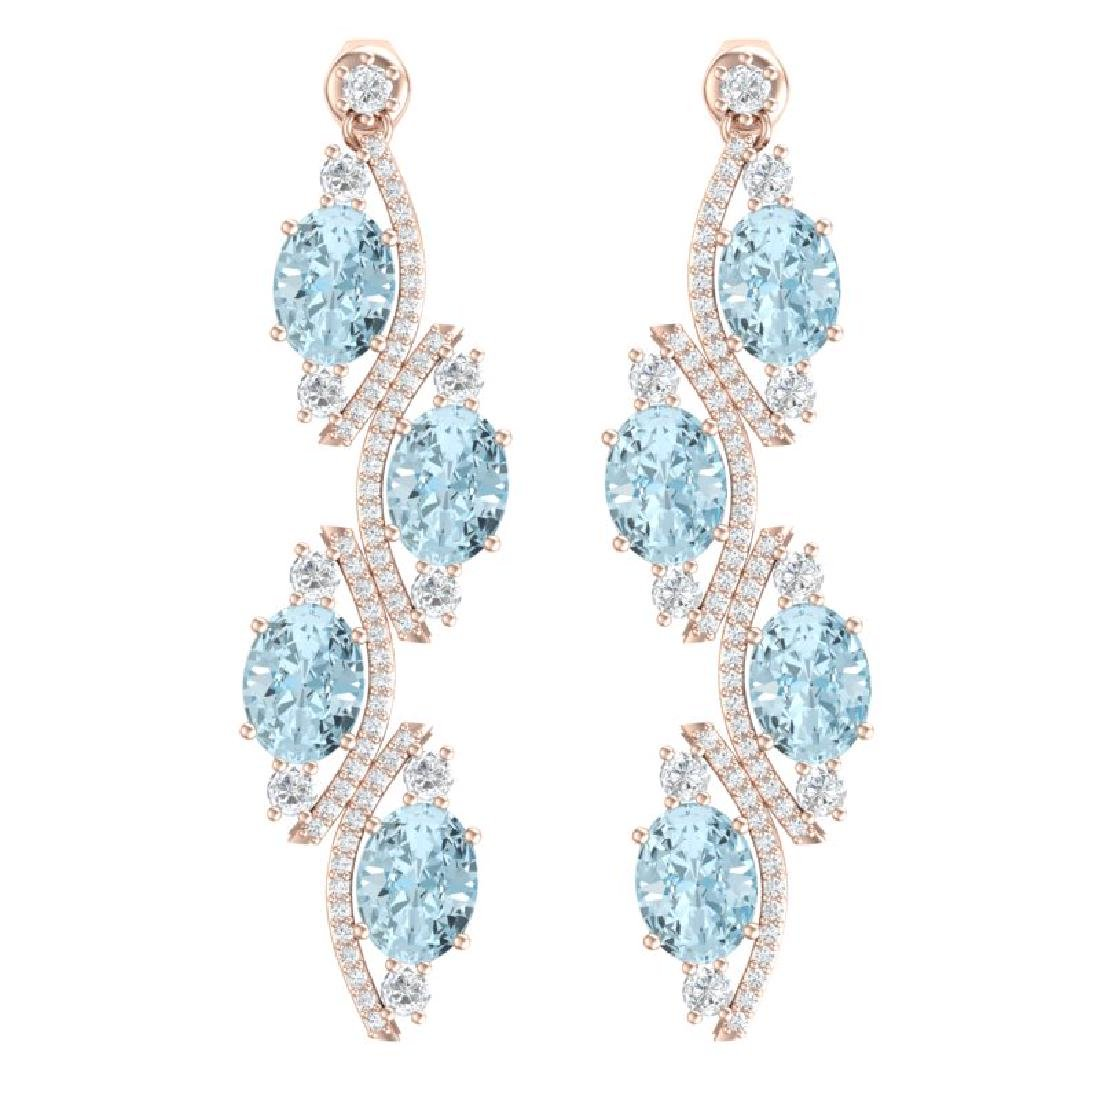 15.72 CTW Royalty Sky Topaz & VS Diamond Earrings 18K